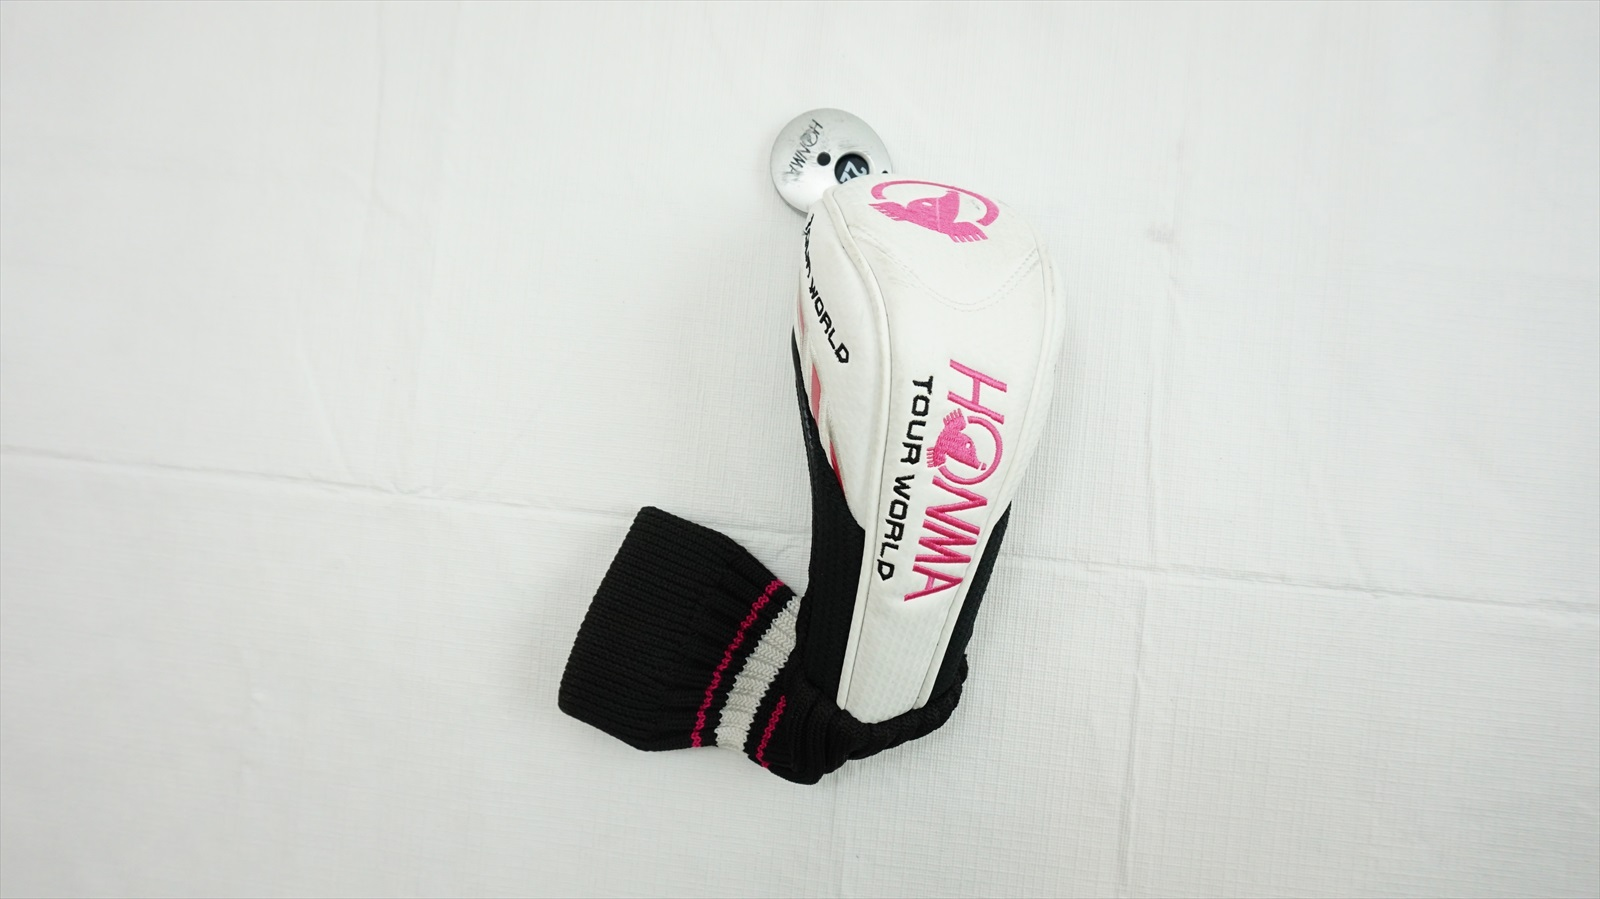 Honma-Golf-Ladies-Tour-World-Pink-Hybrid-Headcover-Head-Cover-Fair